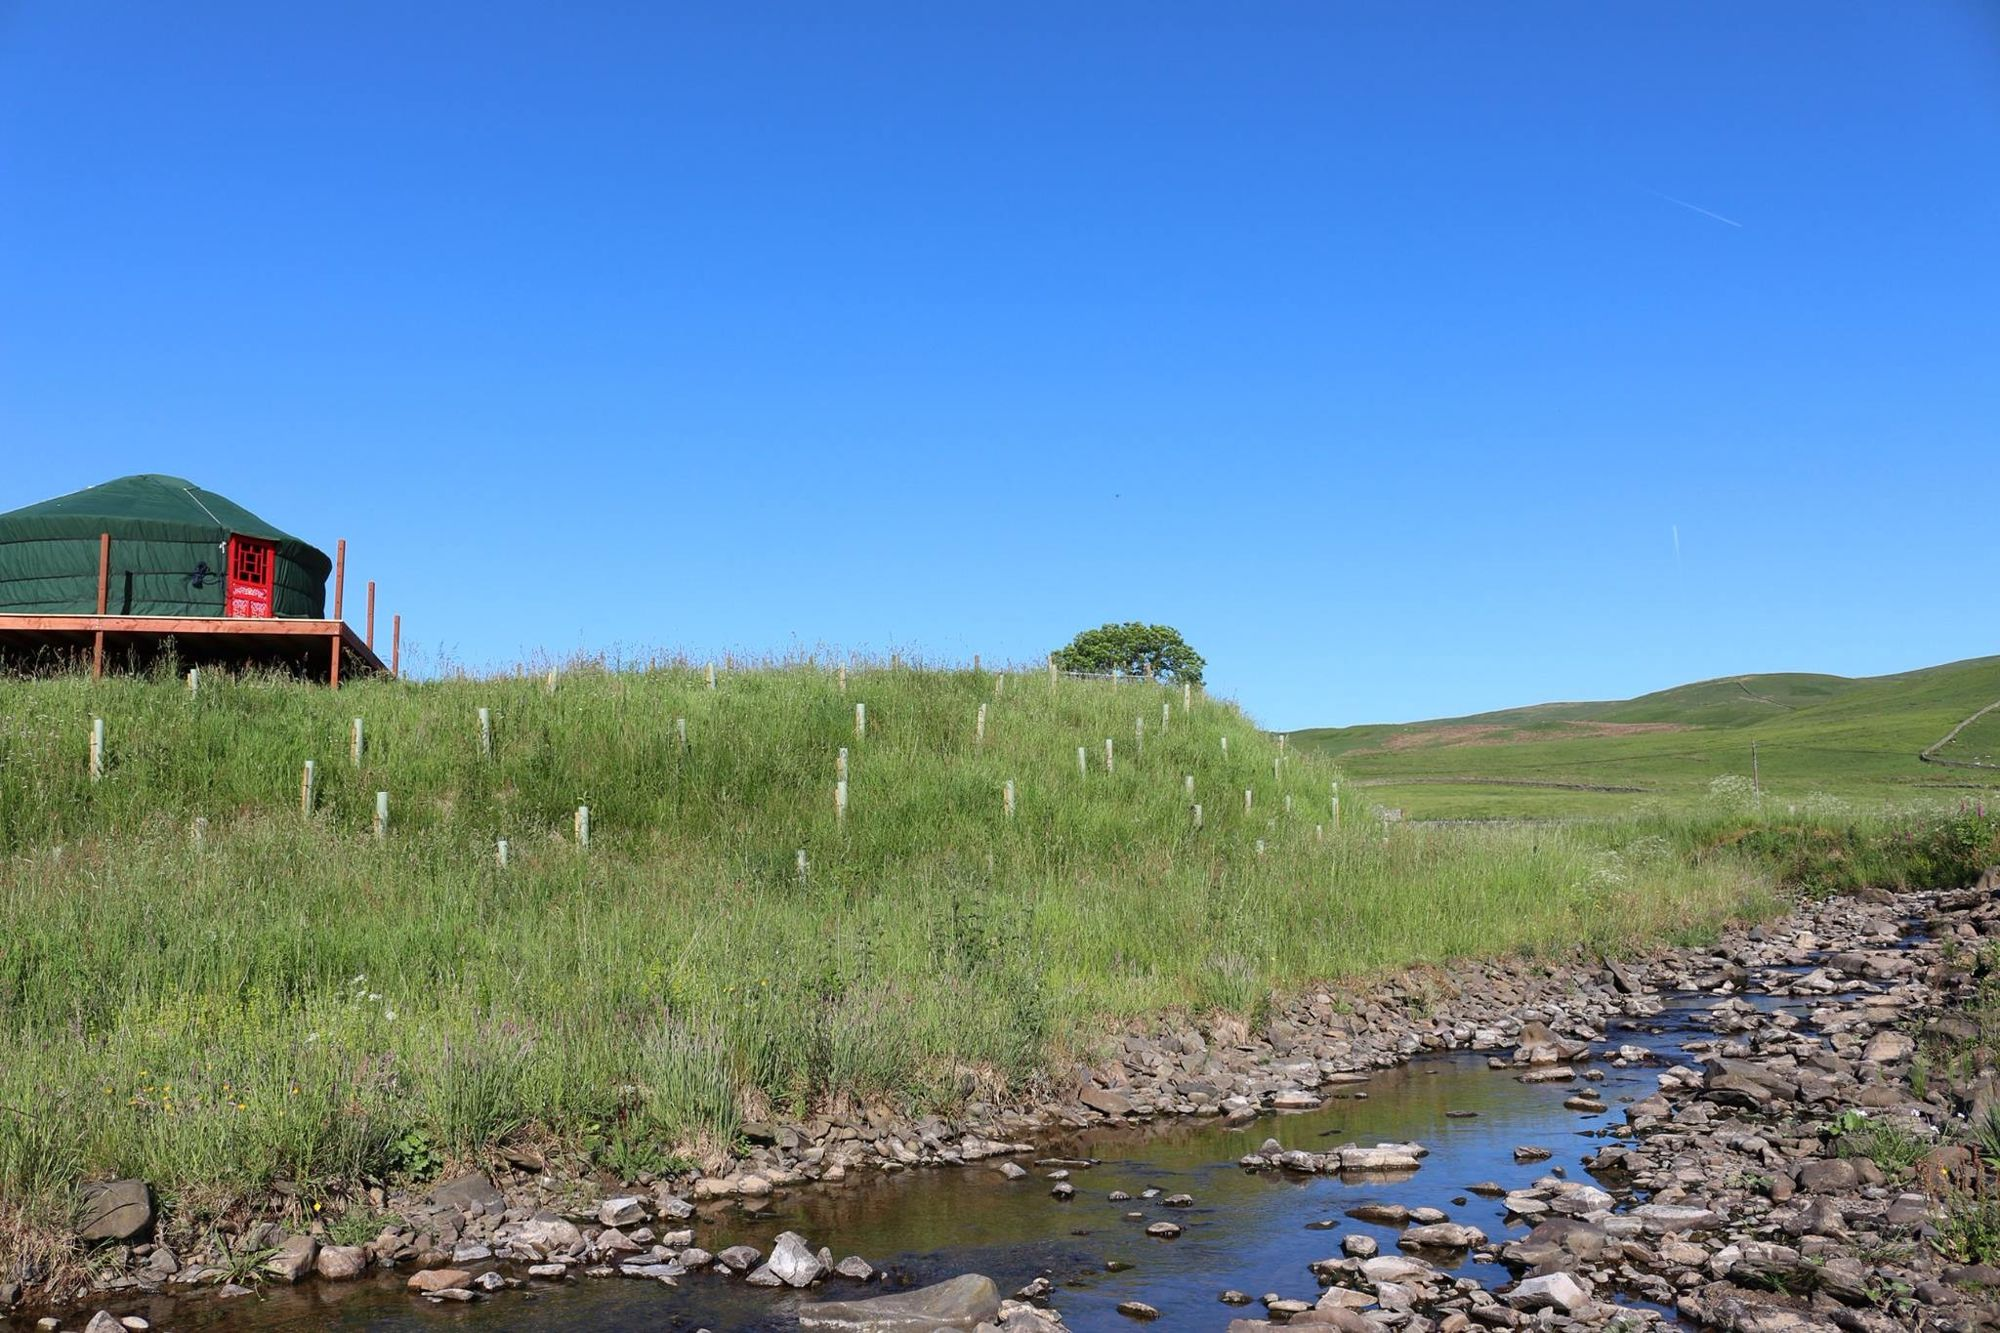 Beautiful yurts on the Scottish Borders matched by stunning scenery all around.